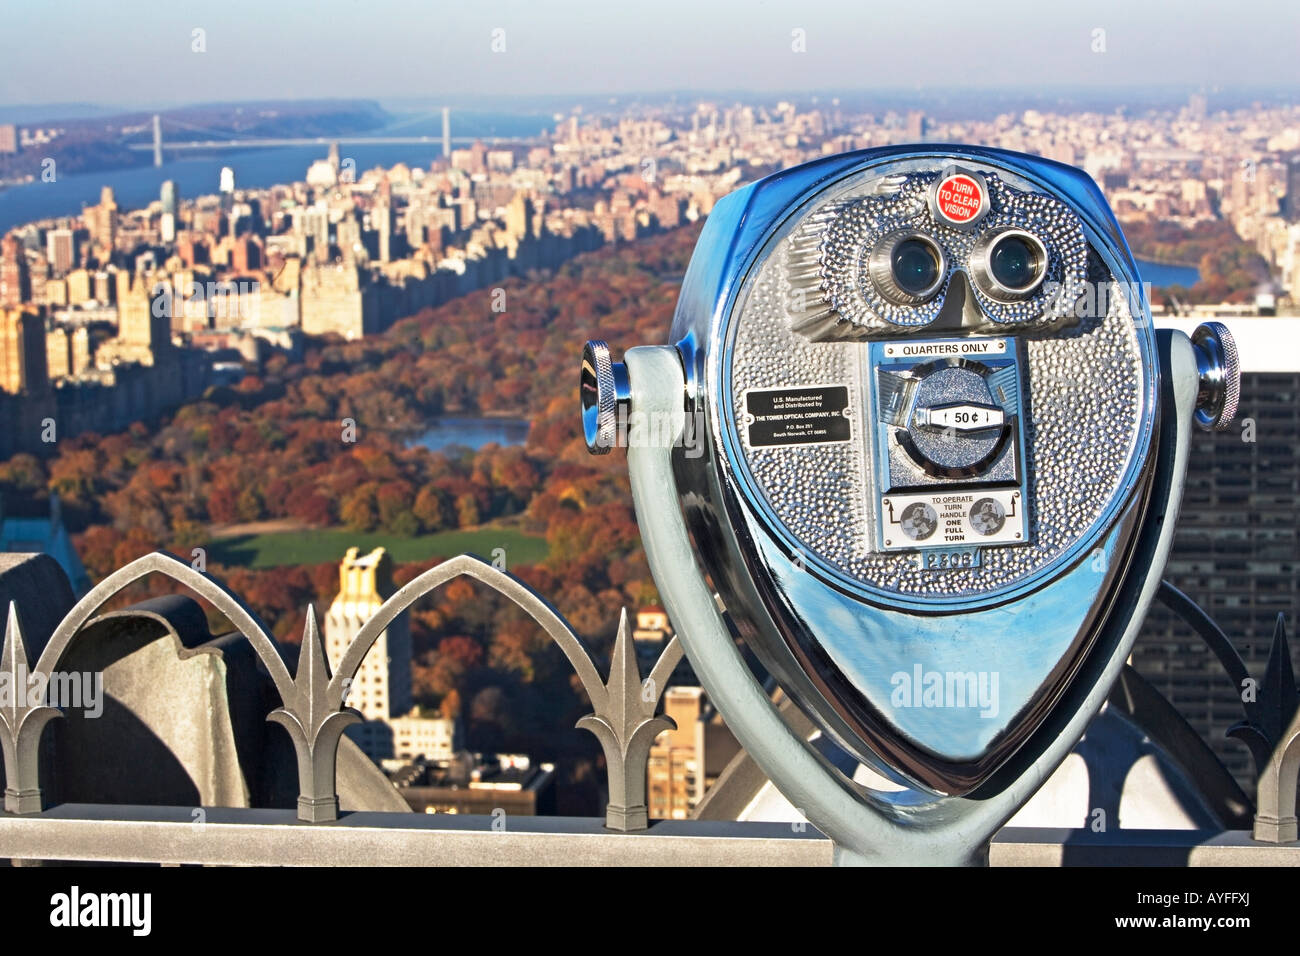 stationary viewer and Central Park, New York City - Stock Image